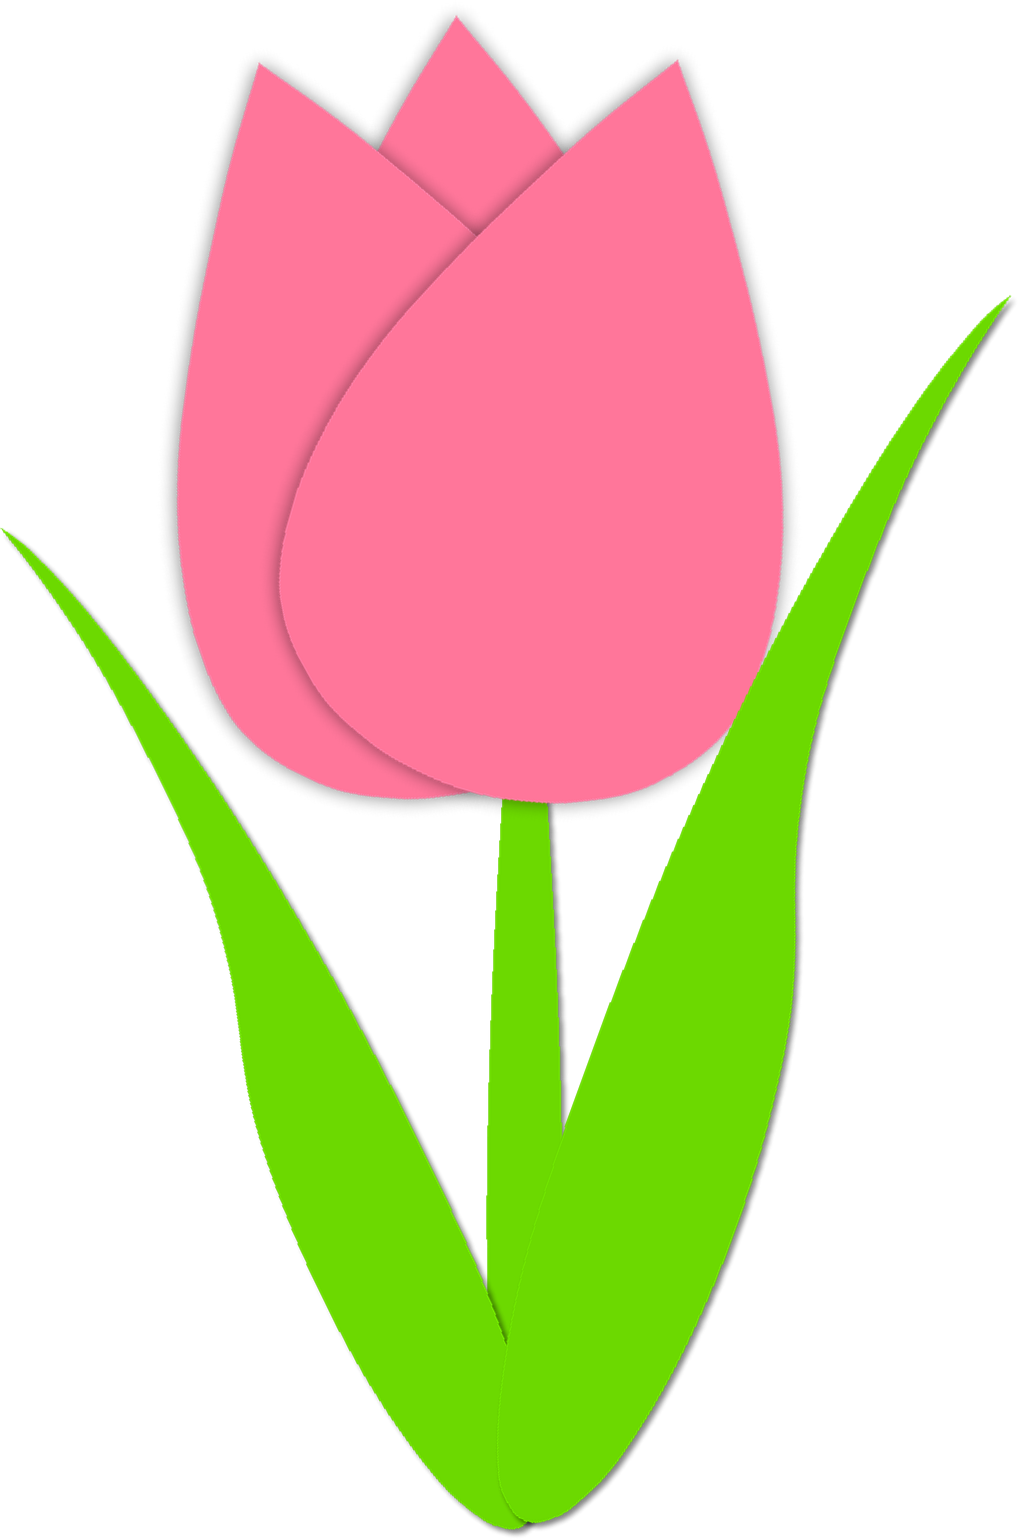 clipart royalty free library March clipart craft. Simple tulip outline spring.